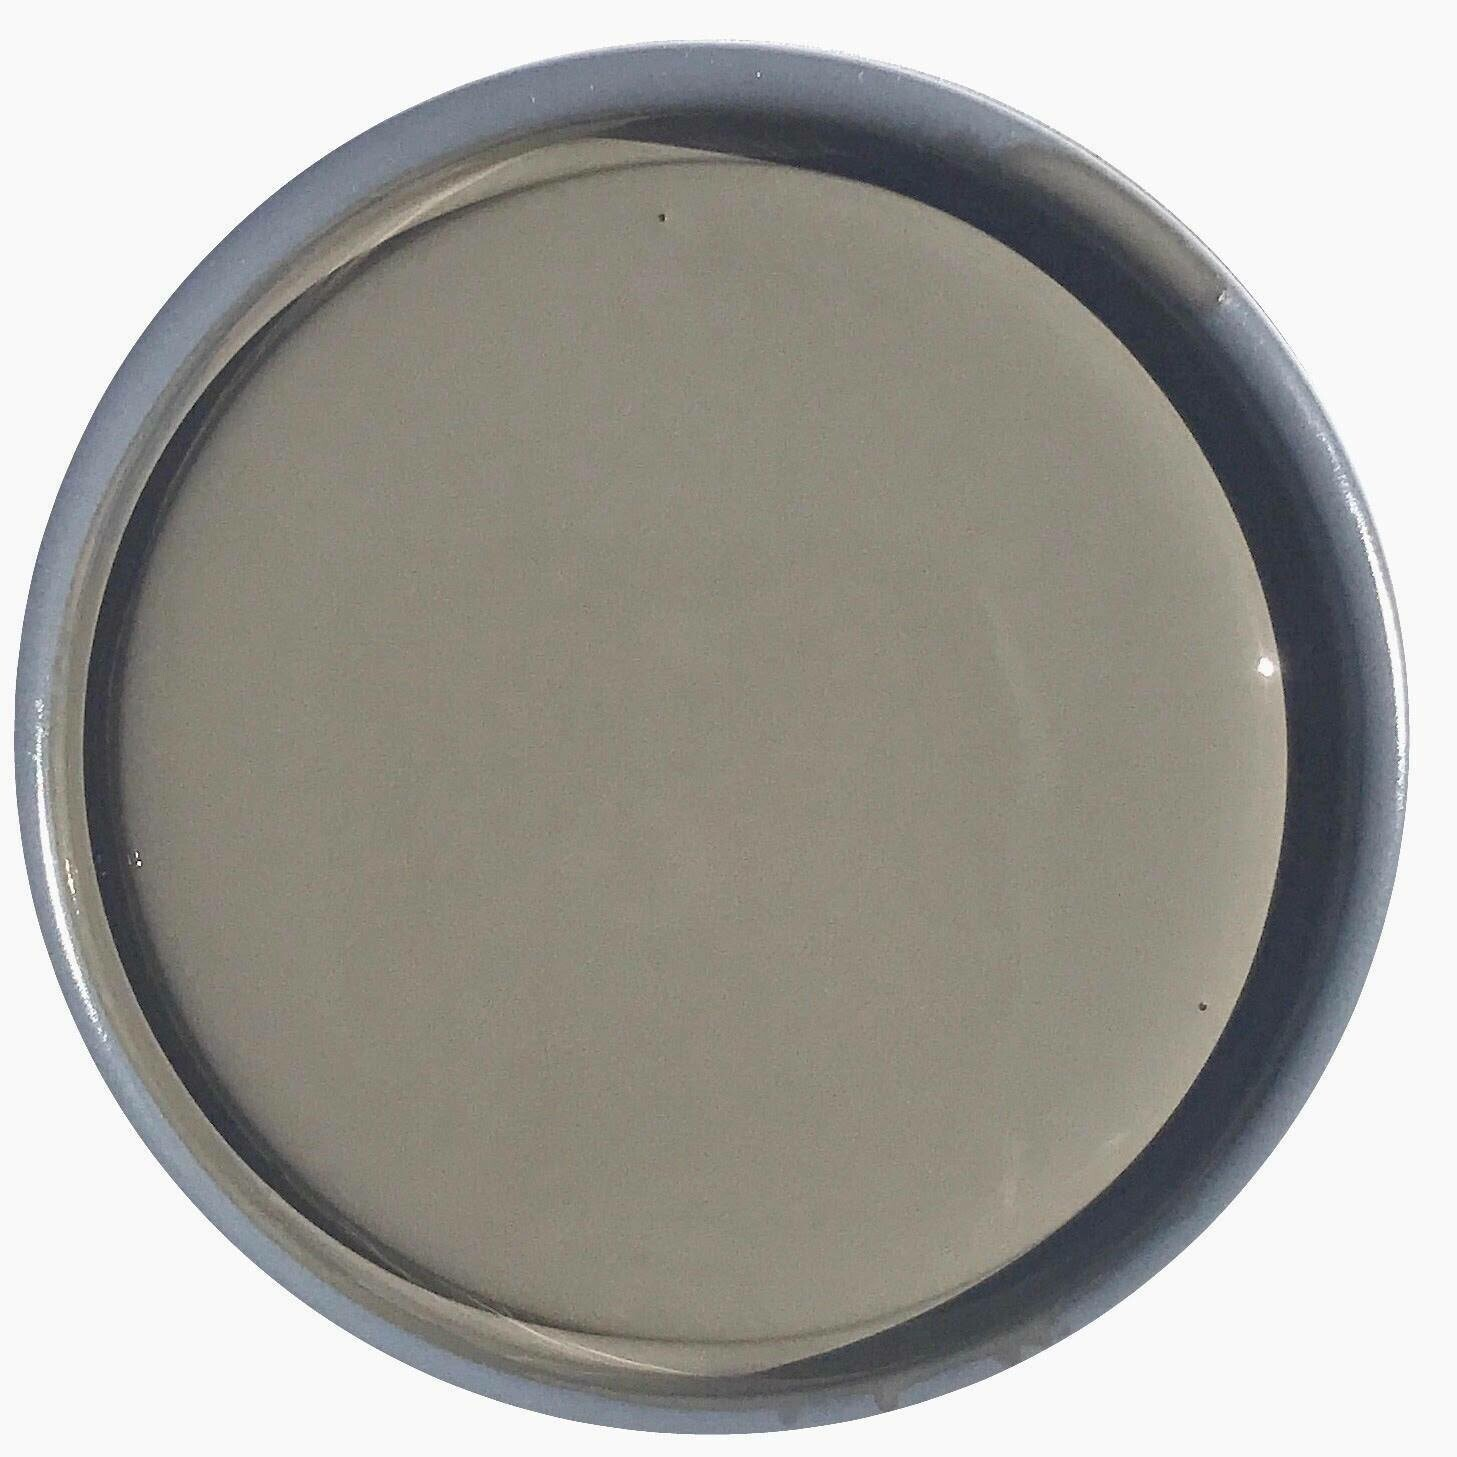 Mortar Glaze (8 oz)